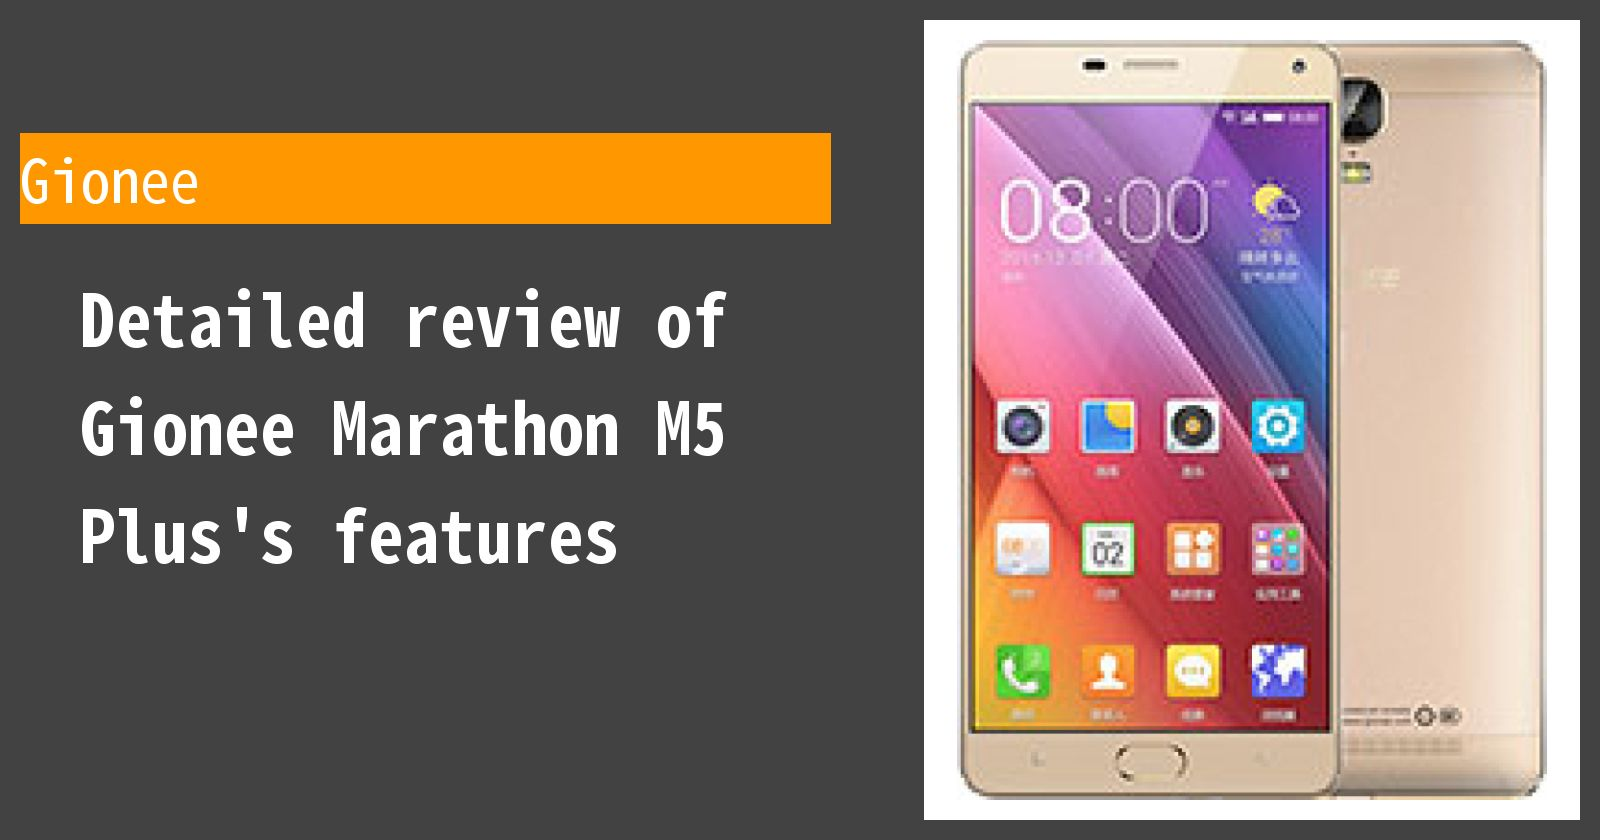 Detailed review of Gionee Marathon M5 Plus's features